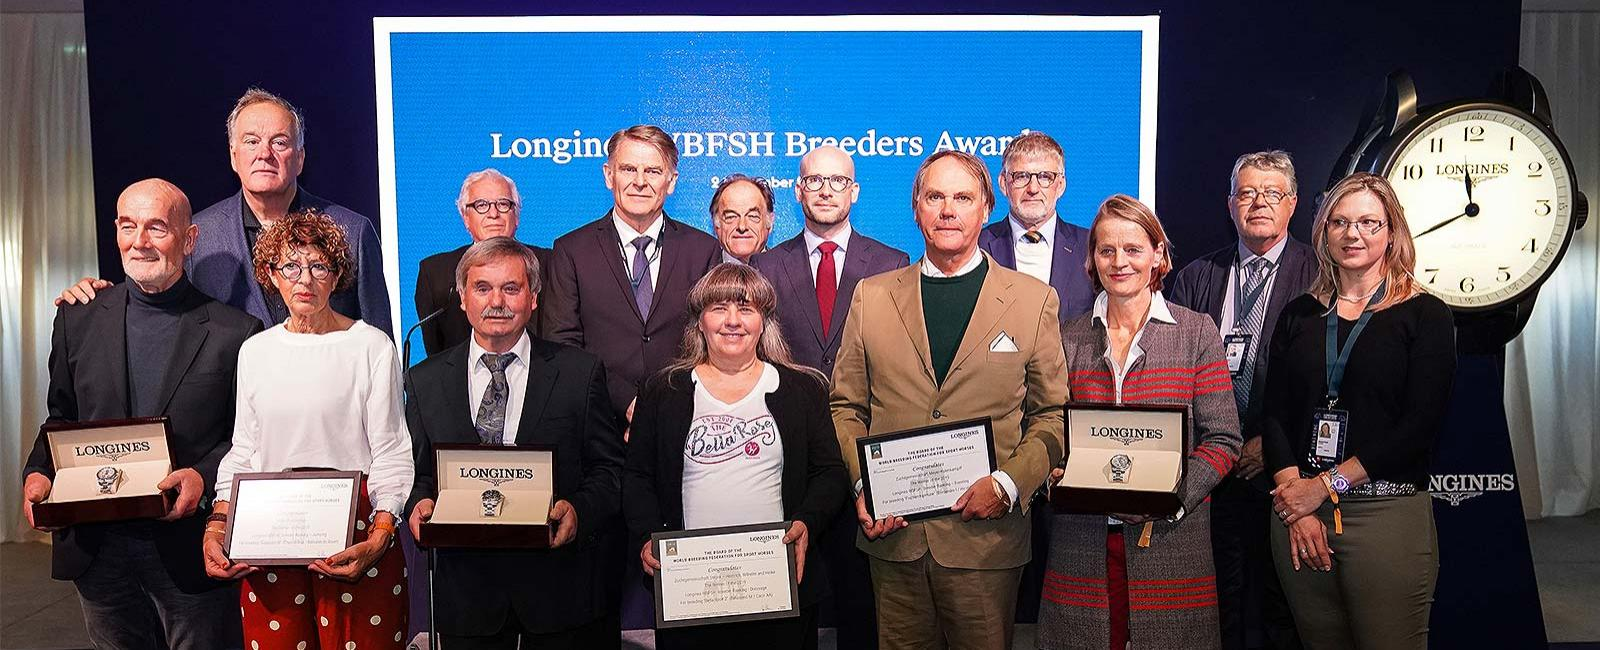 The 2019 Longines WBFSH Breeders Awards; Breeding; Equestrian; 2019